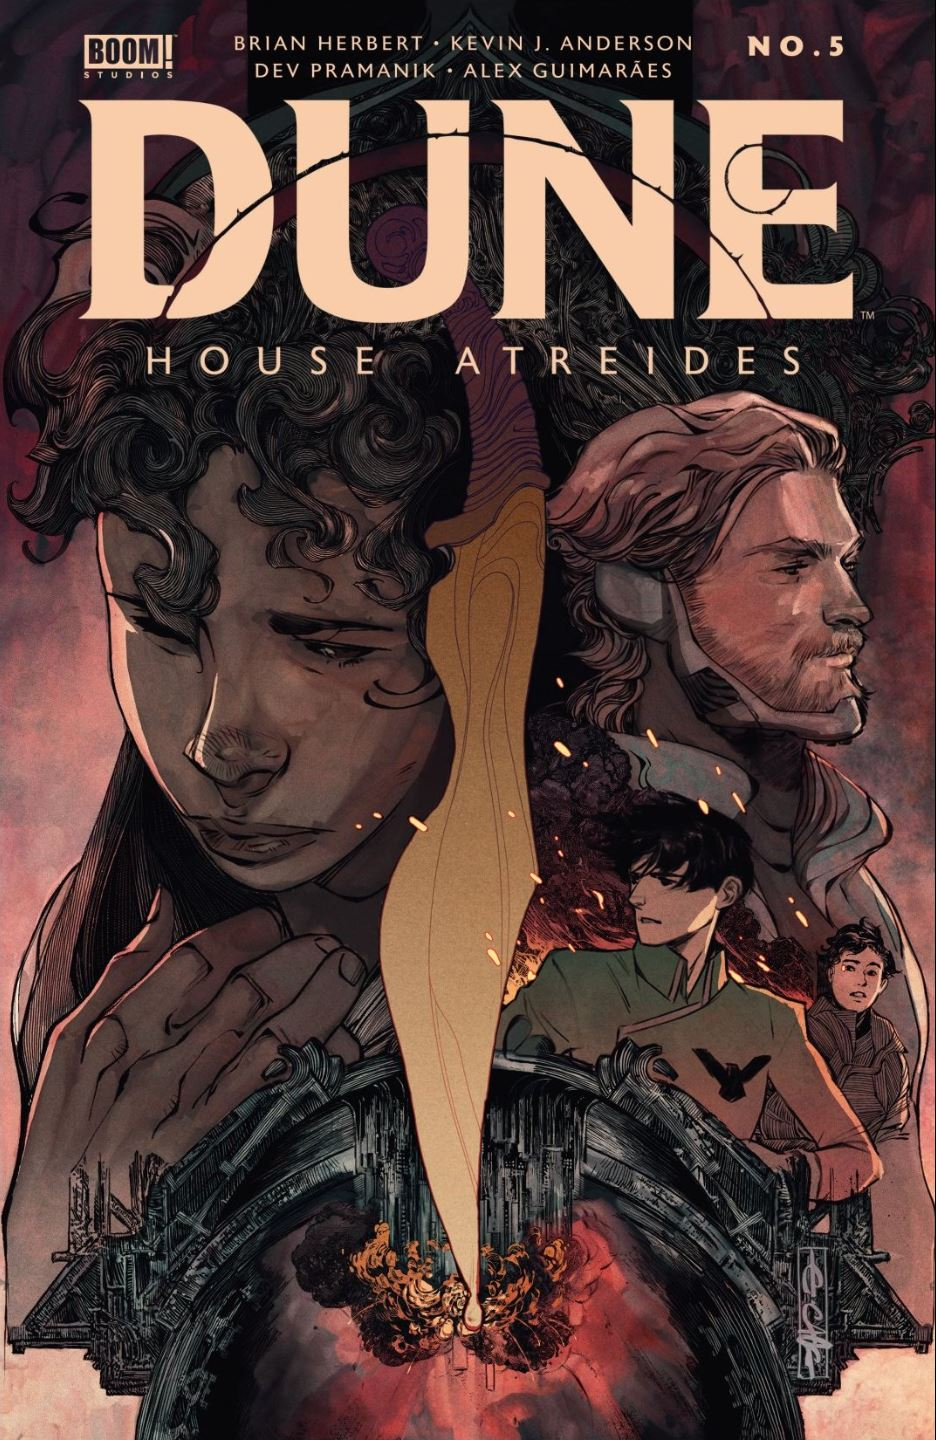 Cover of Dune House Atreides issue 5 by Boom Studios